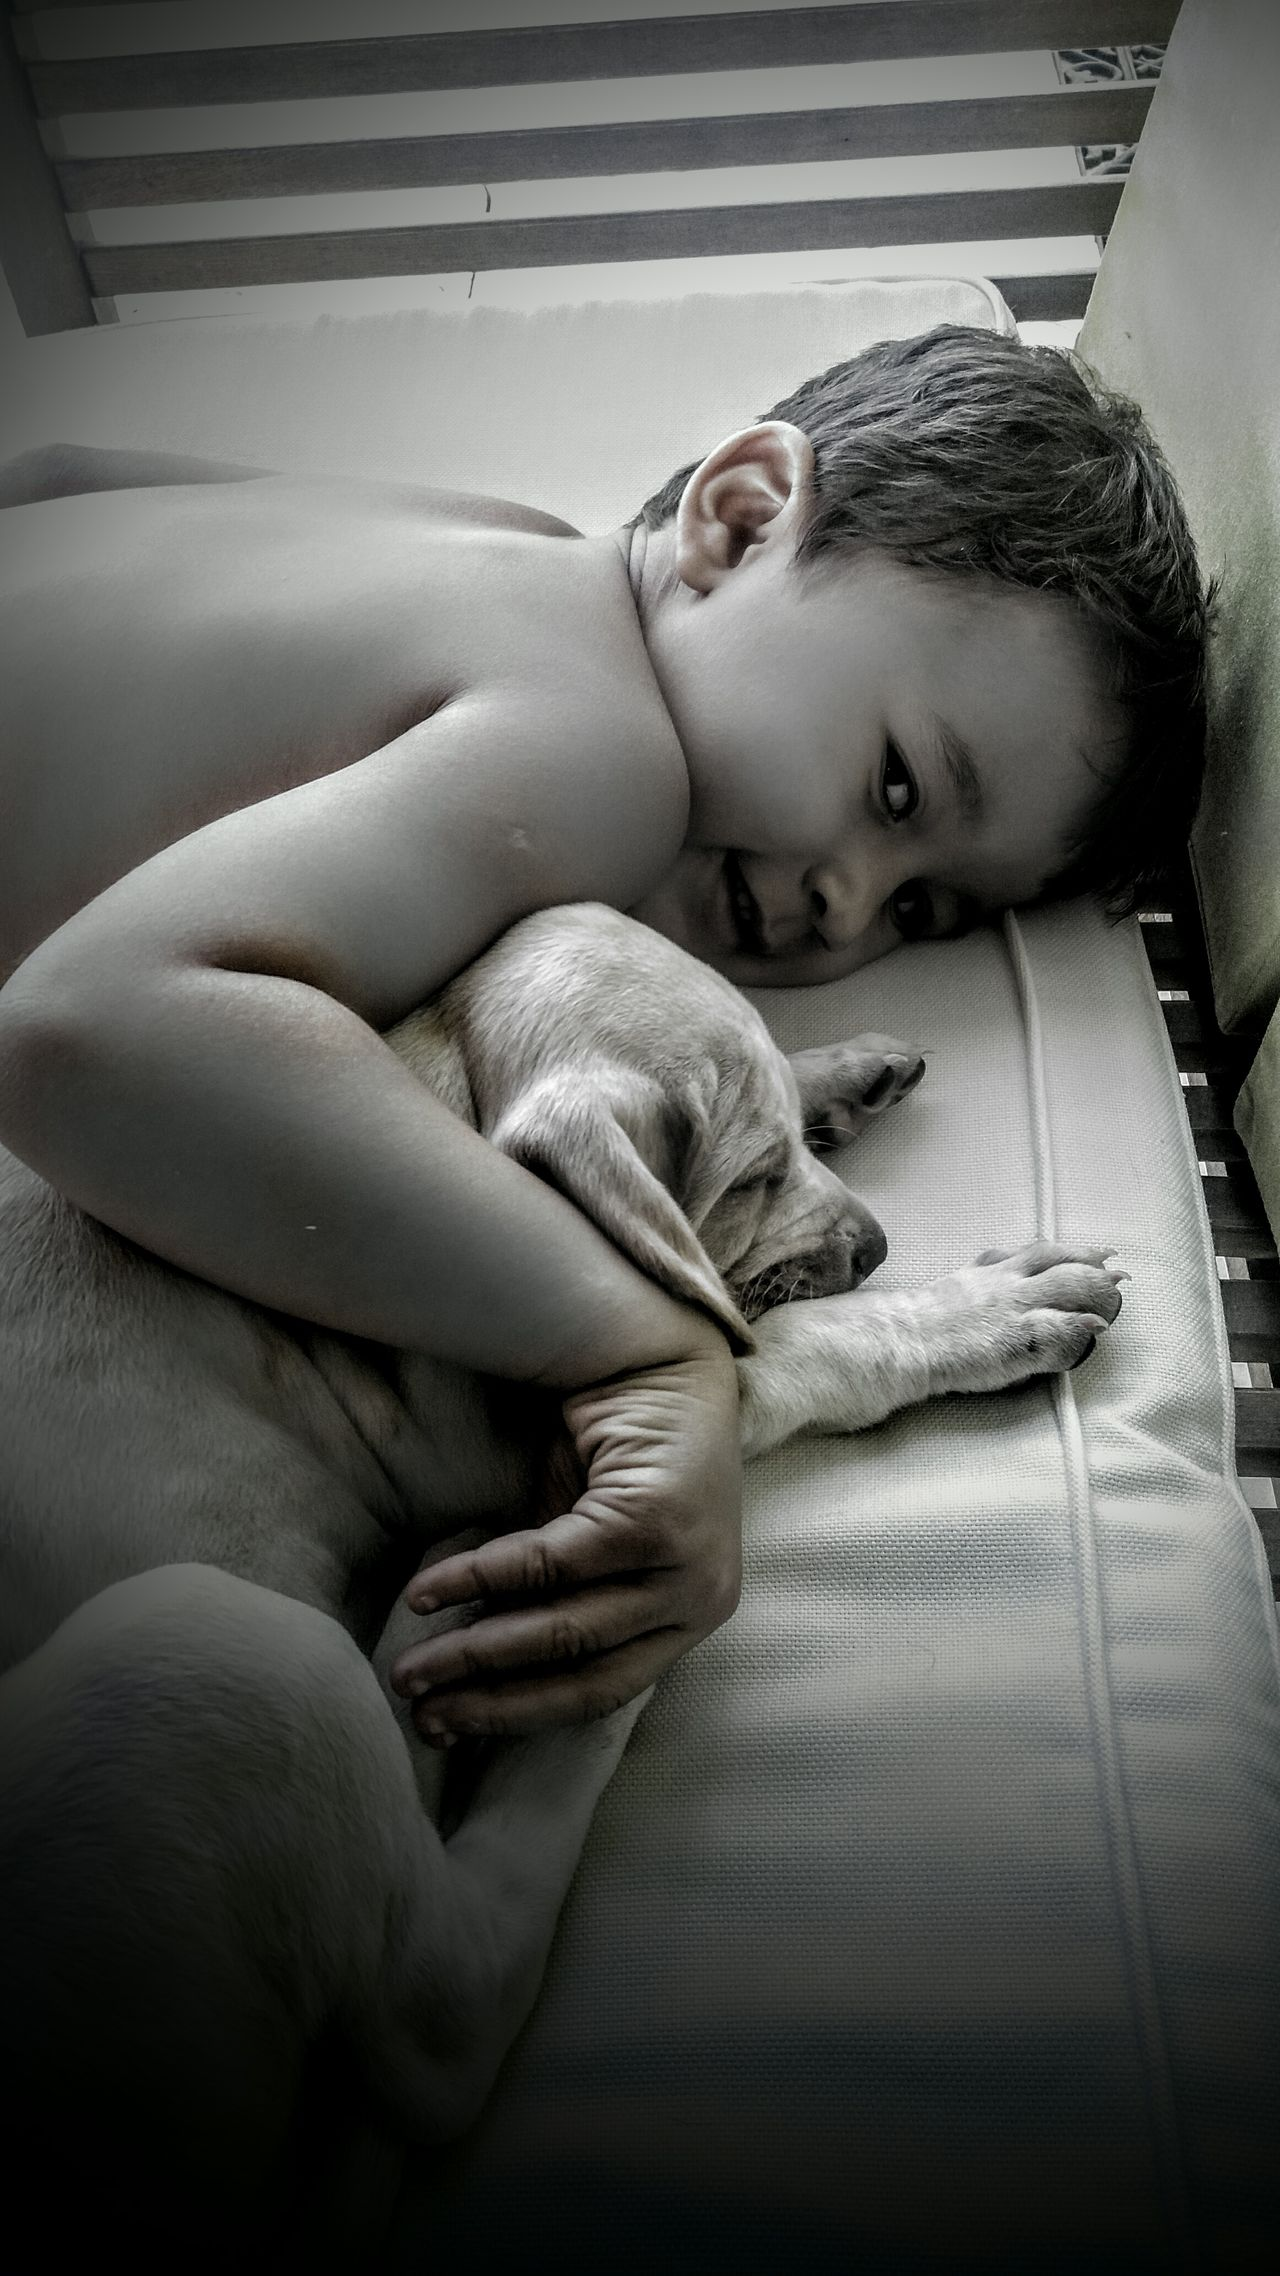 Felicidade Emotional Photography Simple Moment Animal Photography Children Photography Family❤ Popular Photos Children Grandmother Simple Photography Black & White Dog Love Cães Filhote❤❤ Simply Beautiful Inconditional Love